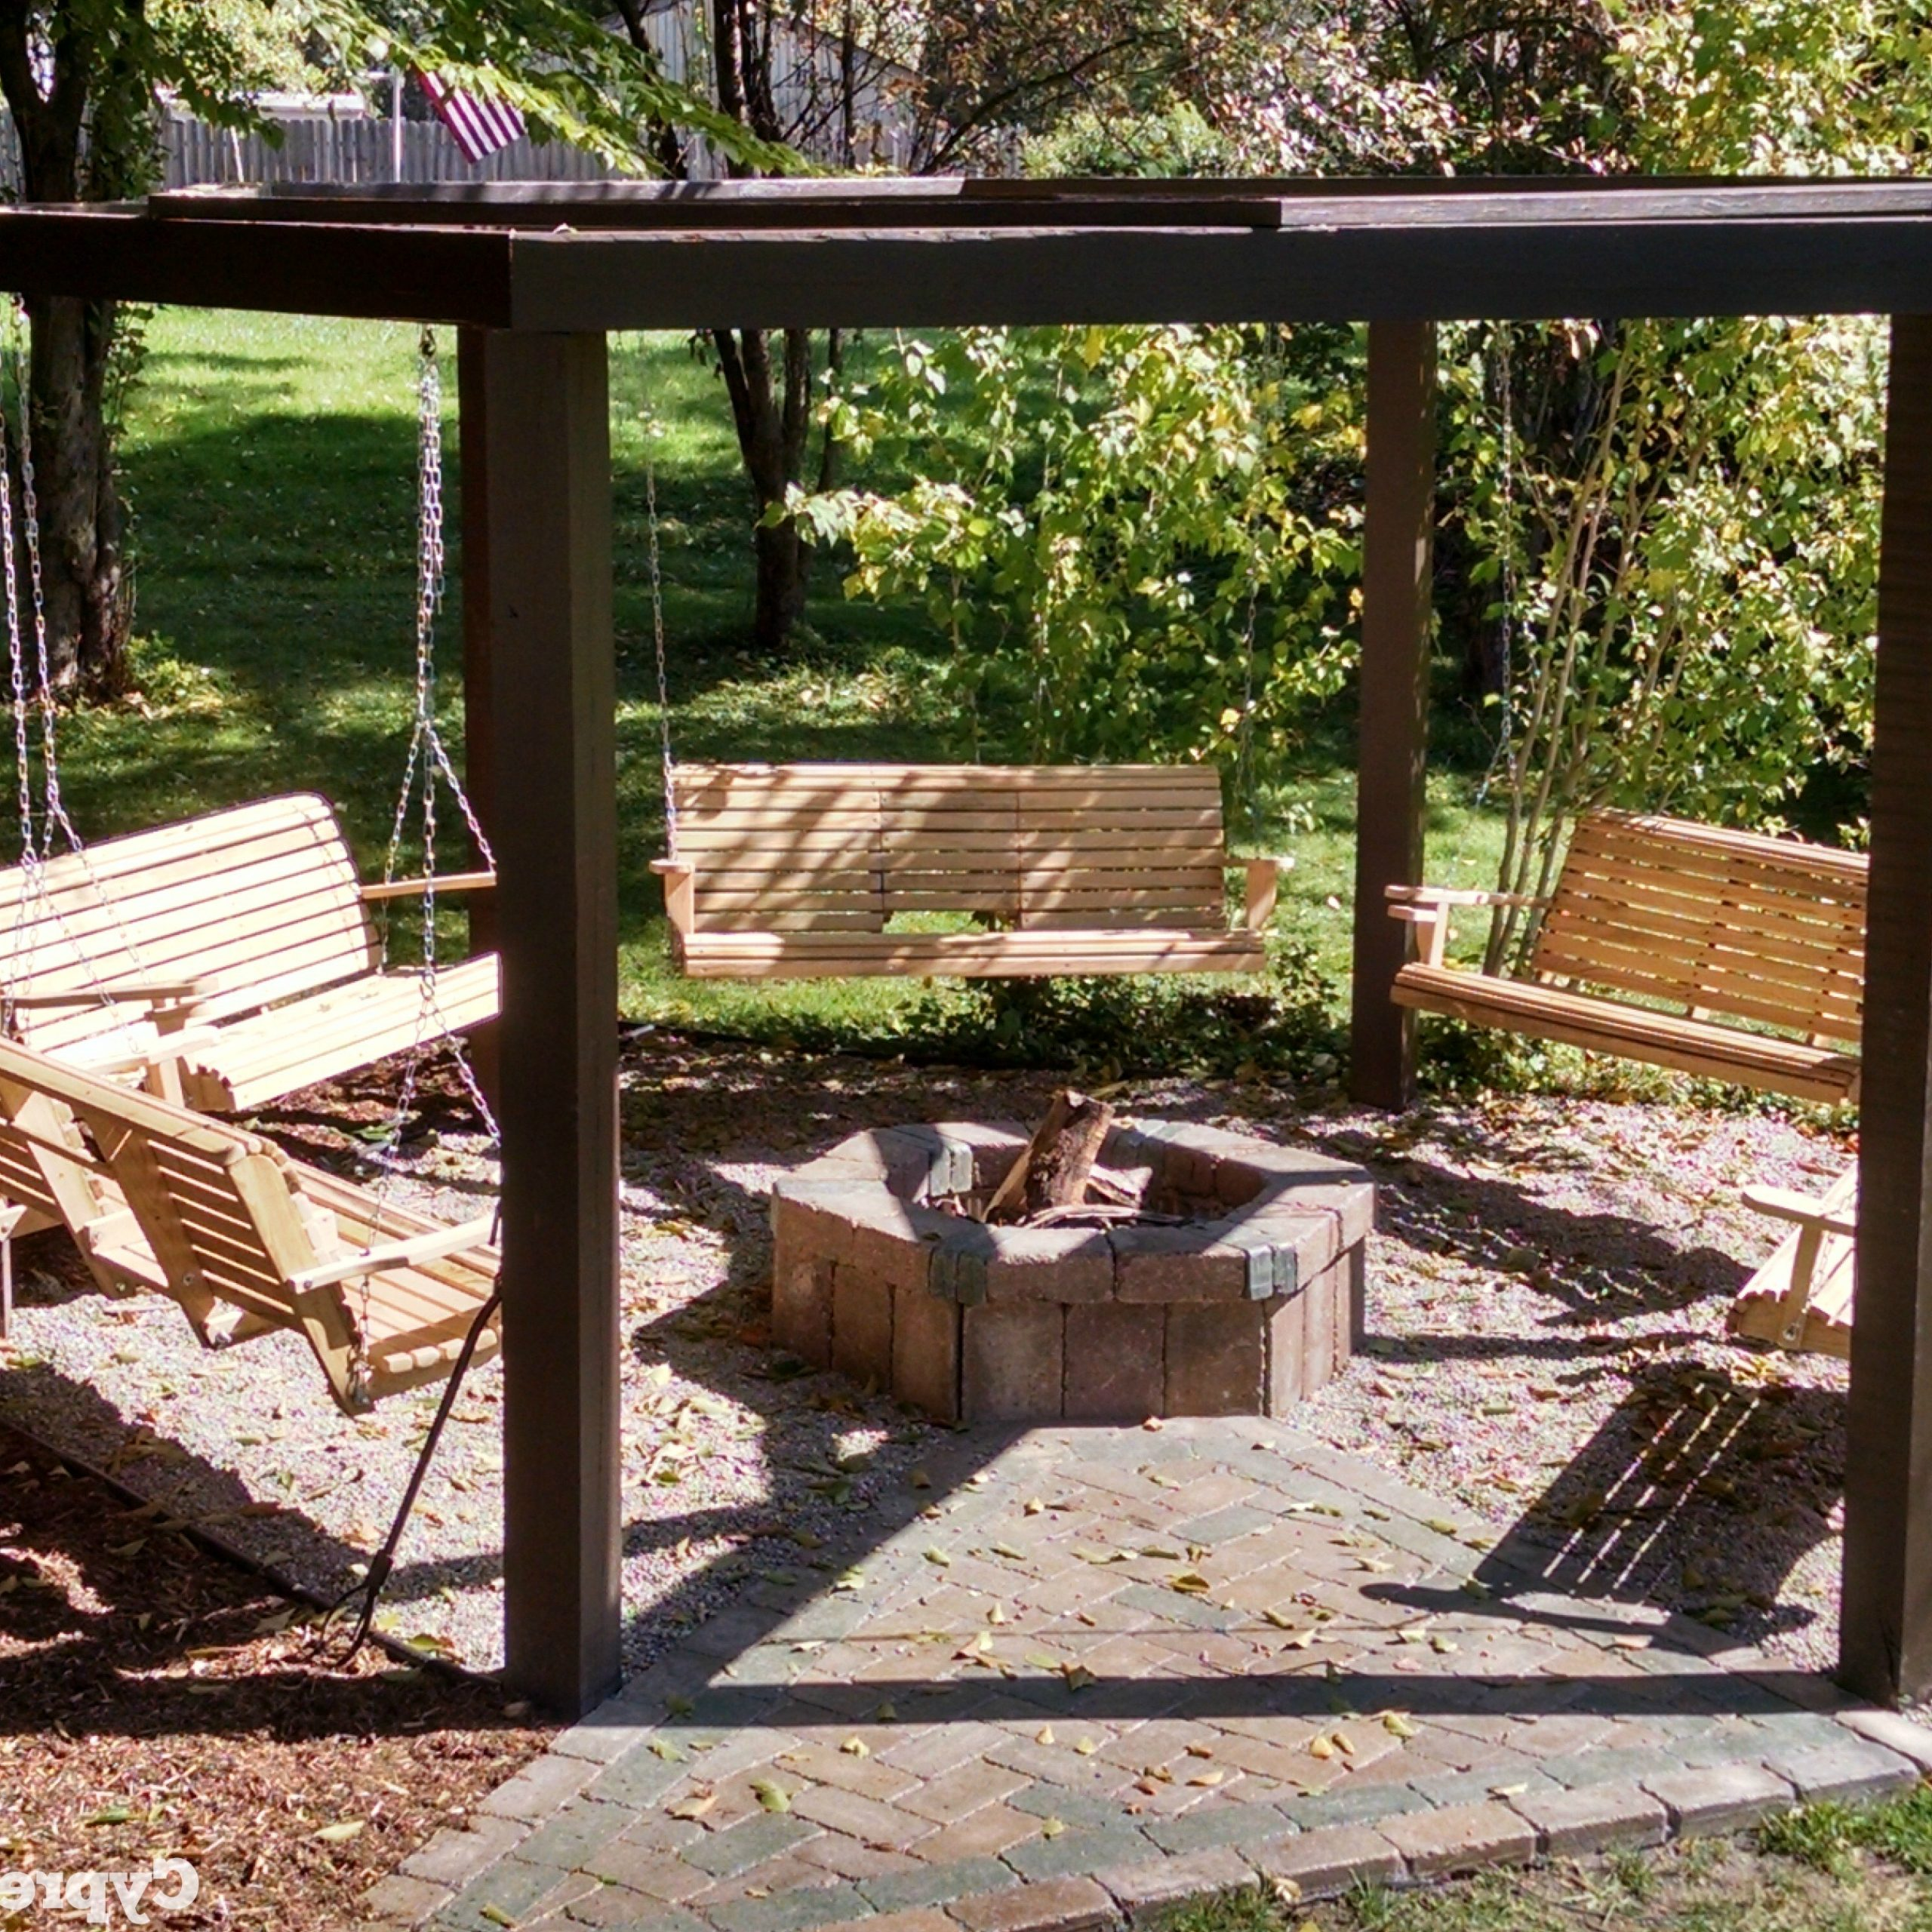 Well Known Outdoor Porch Swings Regarding New Patio Swings On Sale Image Of Patio Decorative (View 5 of 25)